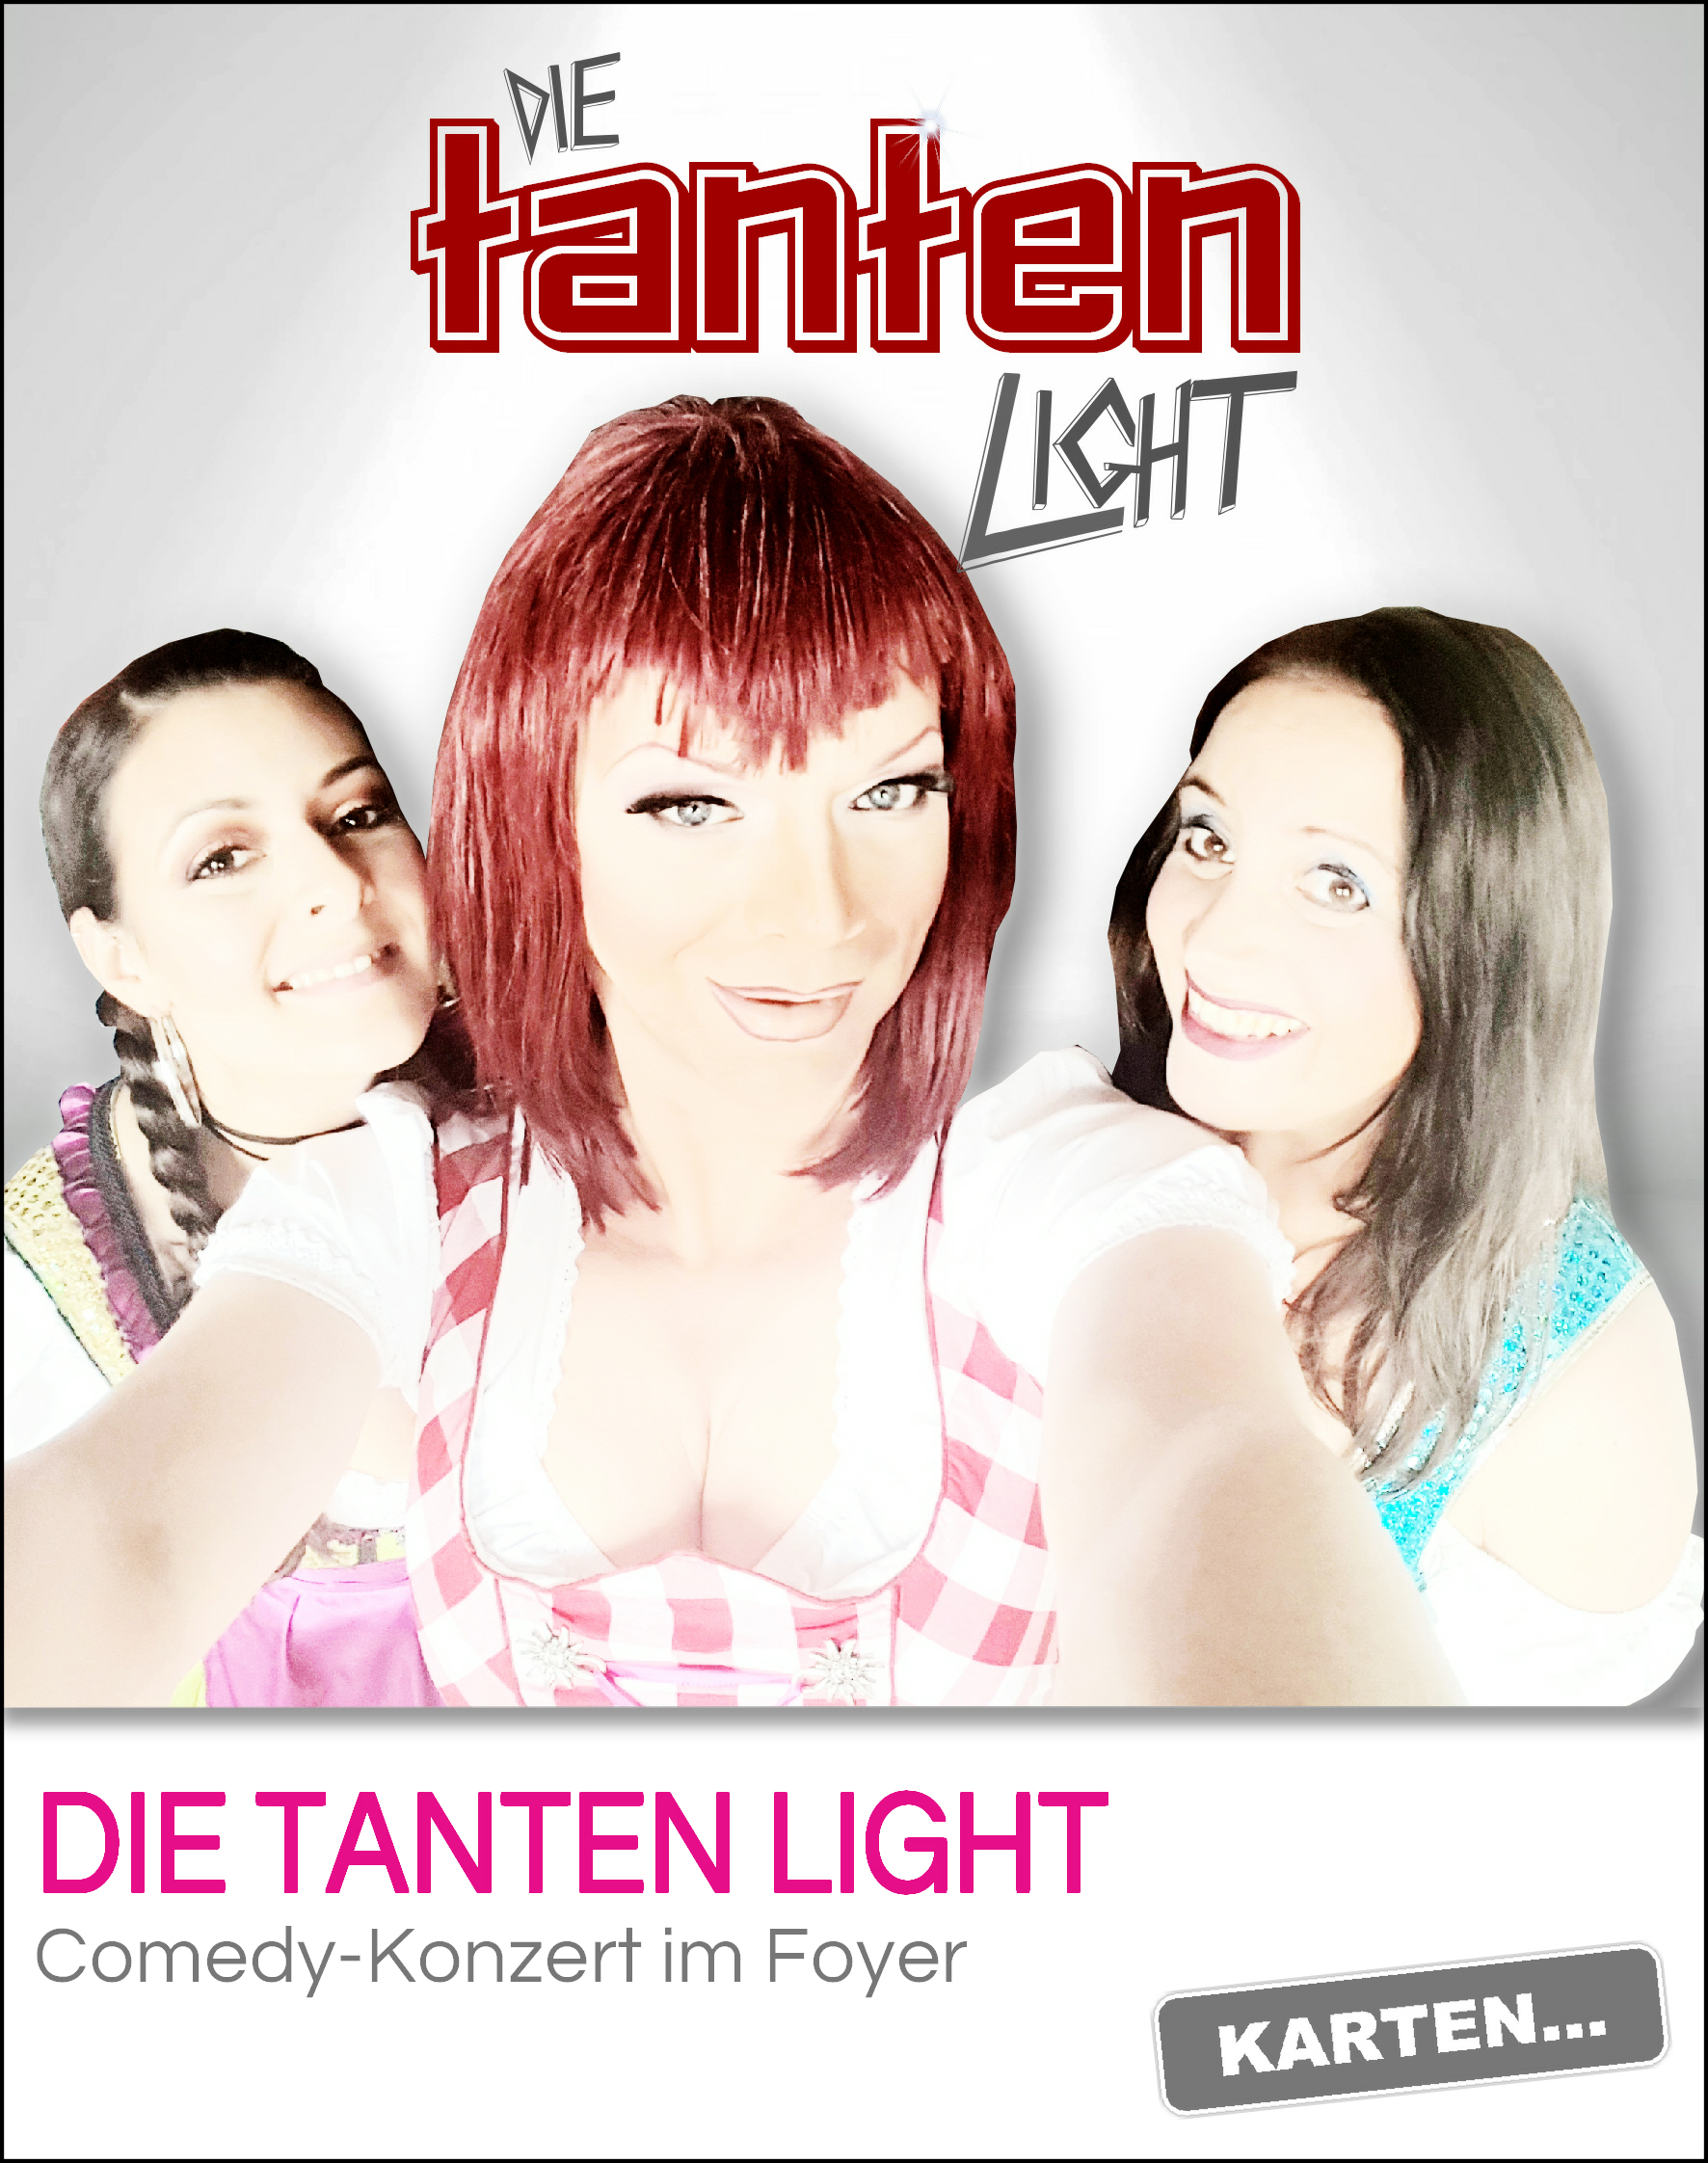 die TANTEN light